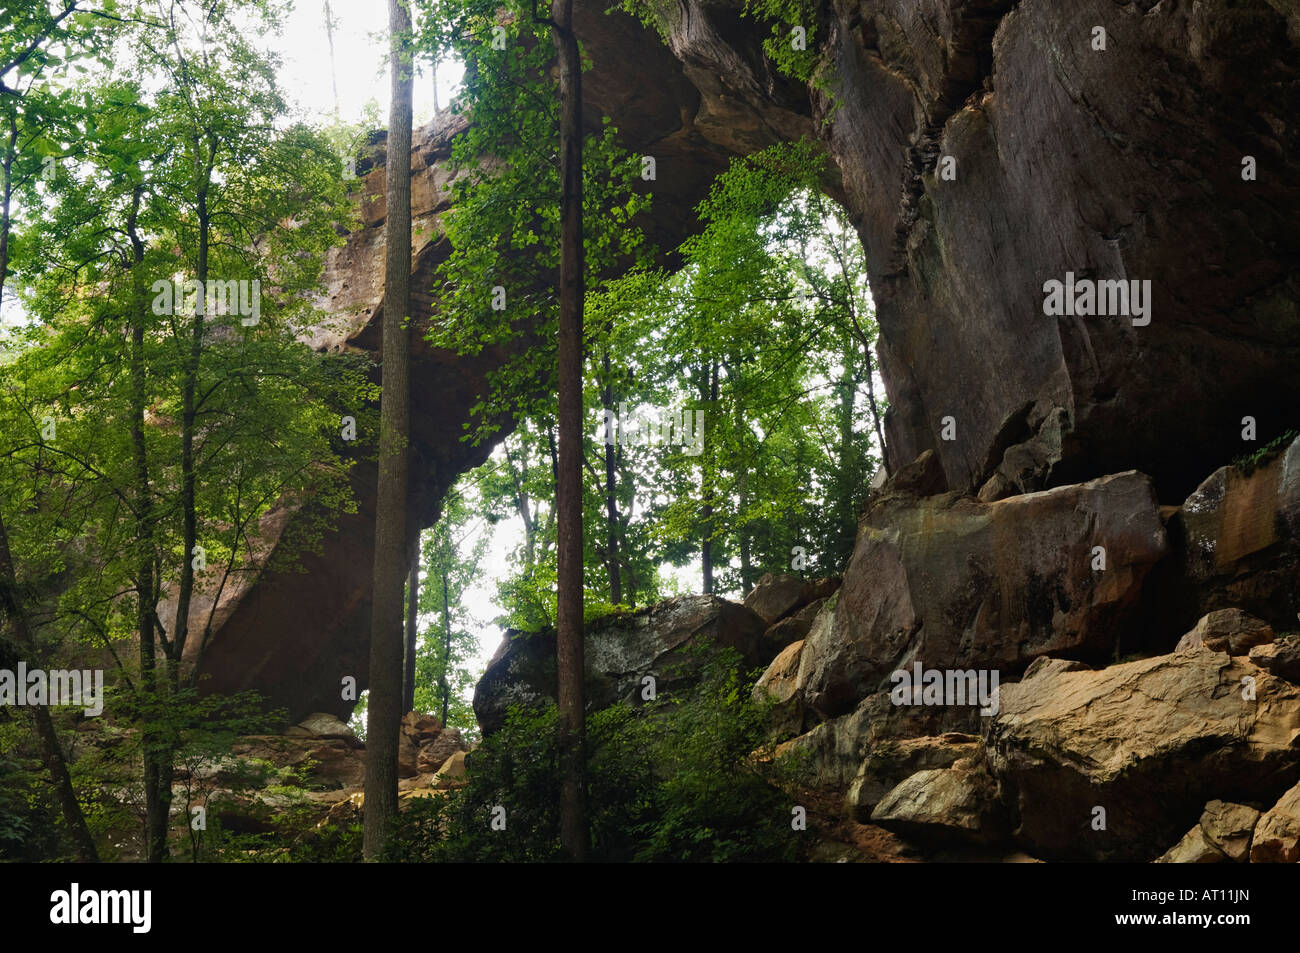 Gray S Arch Red River Gorge Geological Area Kentucky Stock